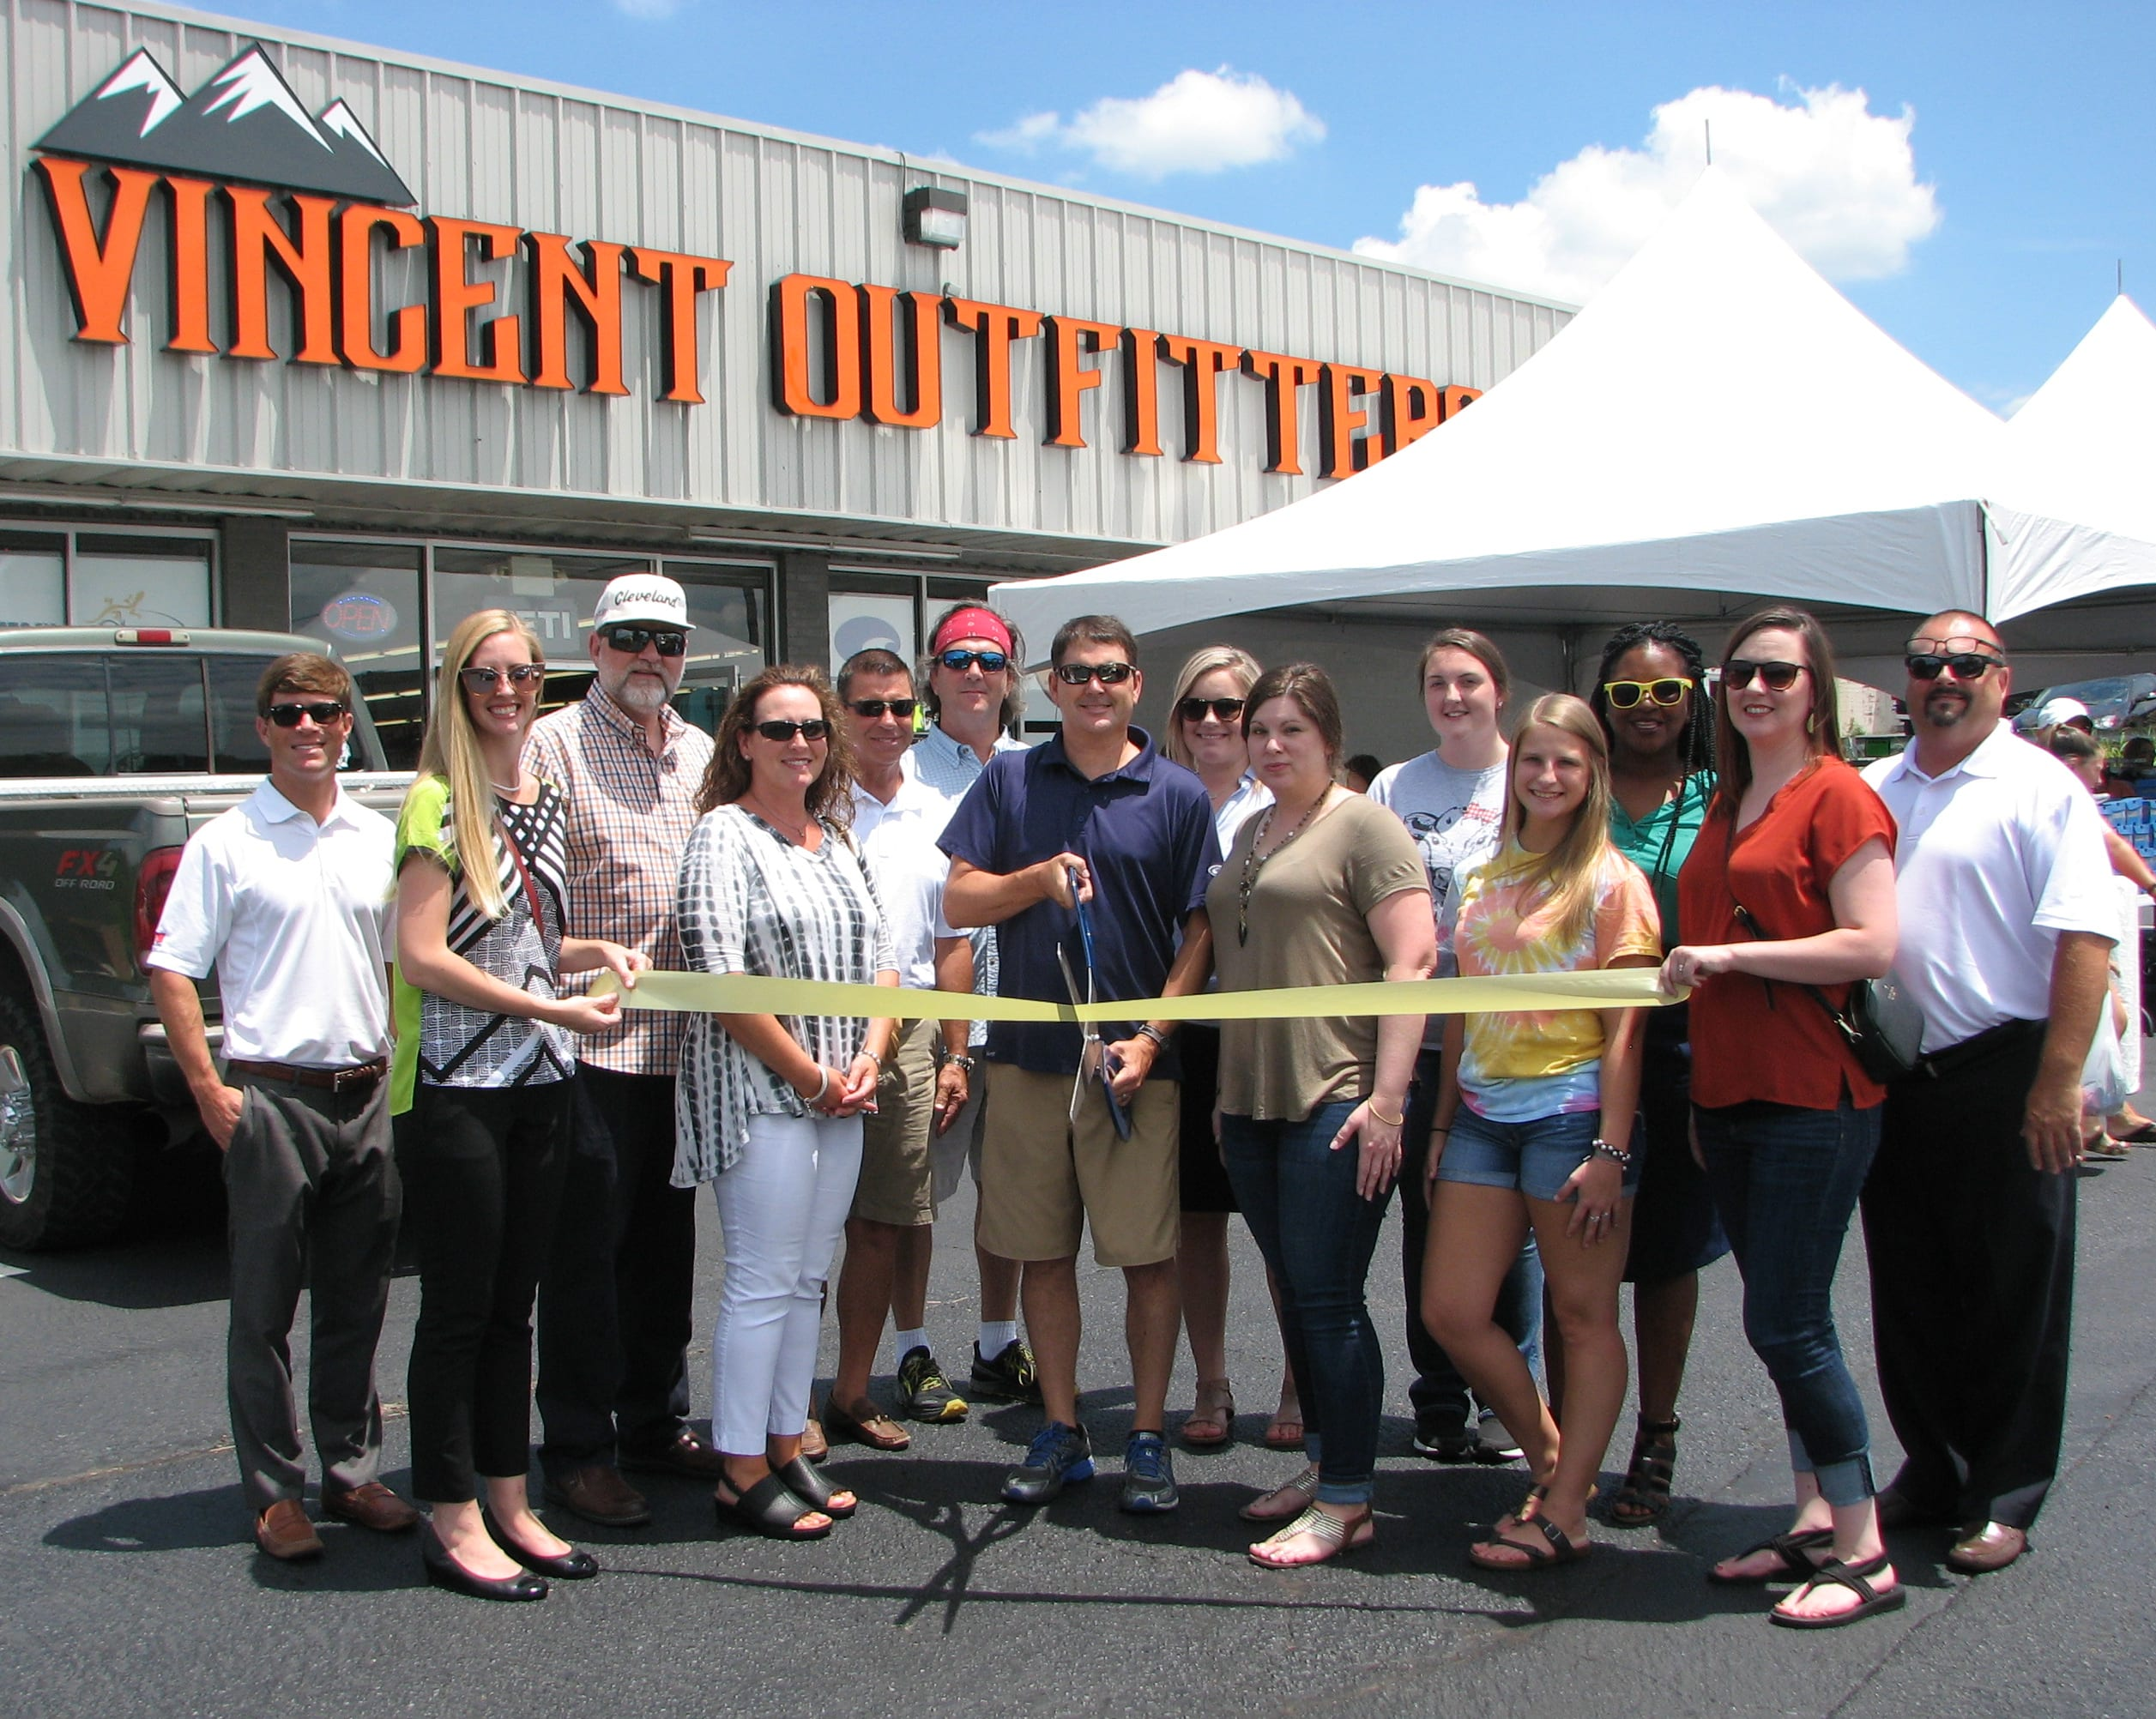 Vincent-Outfitters-Ribbon-Cutting-crop.jpg